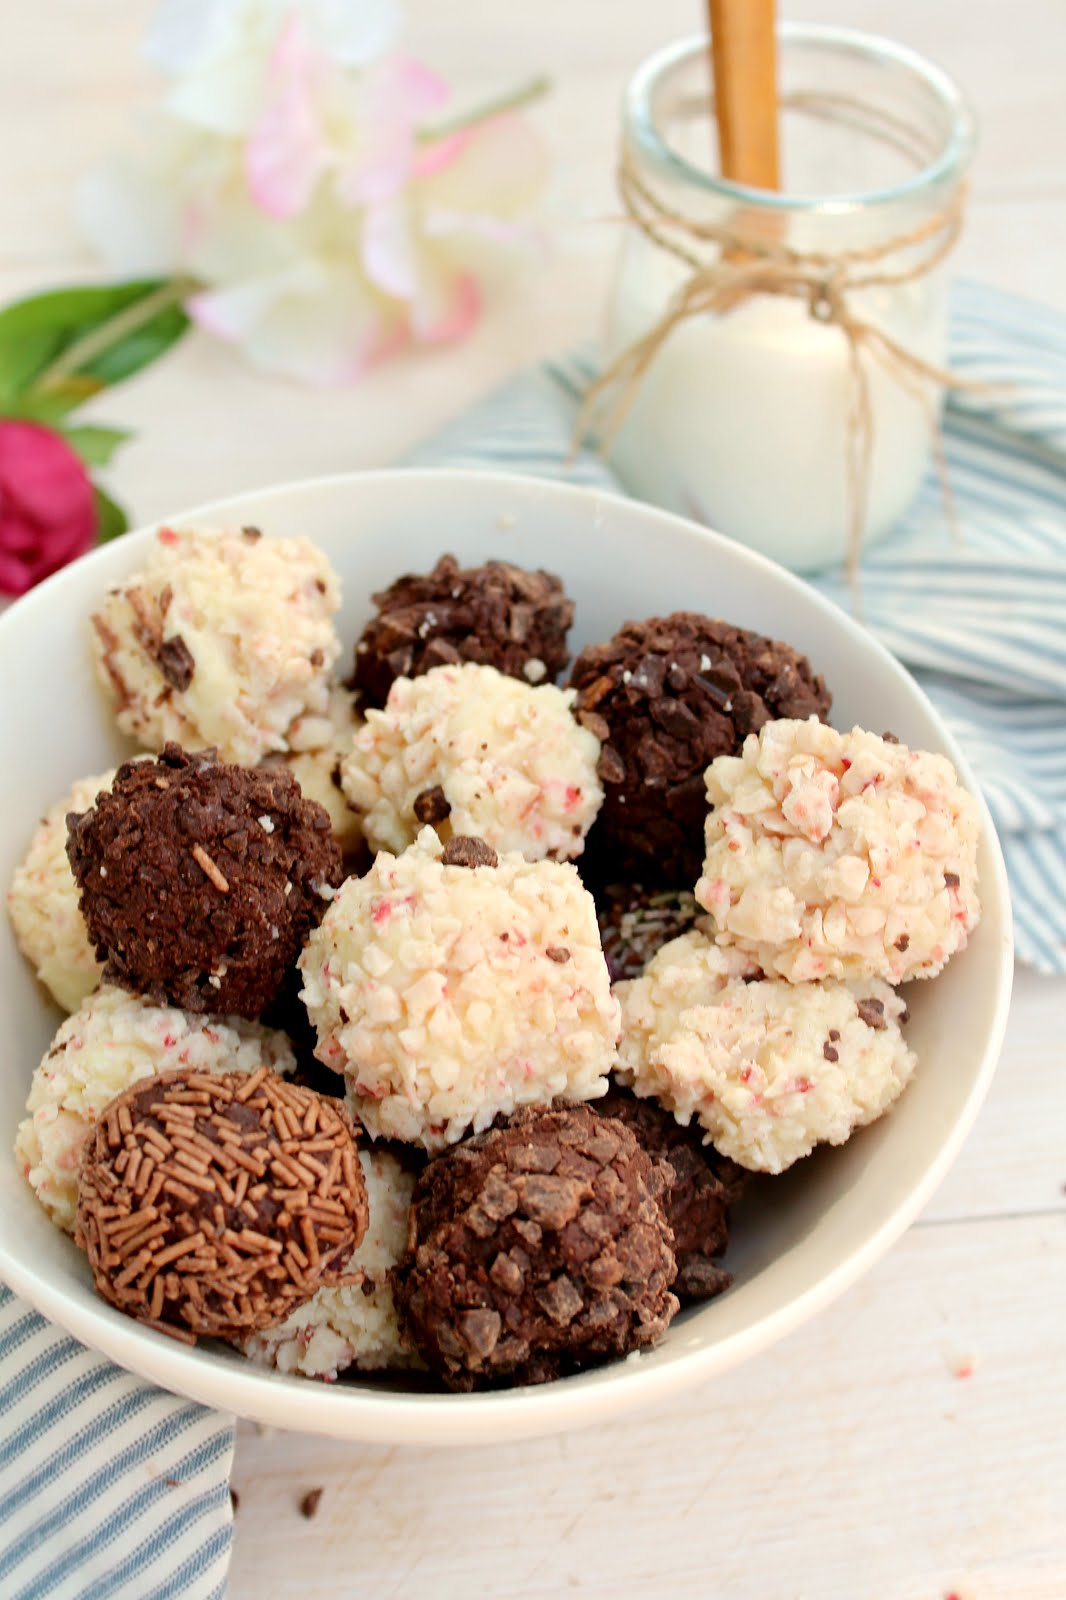 3 Ingredient Greek Yogurt Truffles: much healthier than most versions, and still creamy and fudgy!